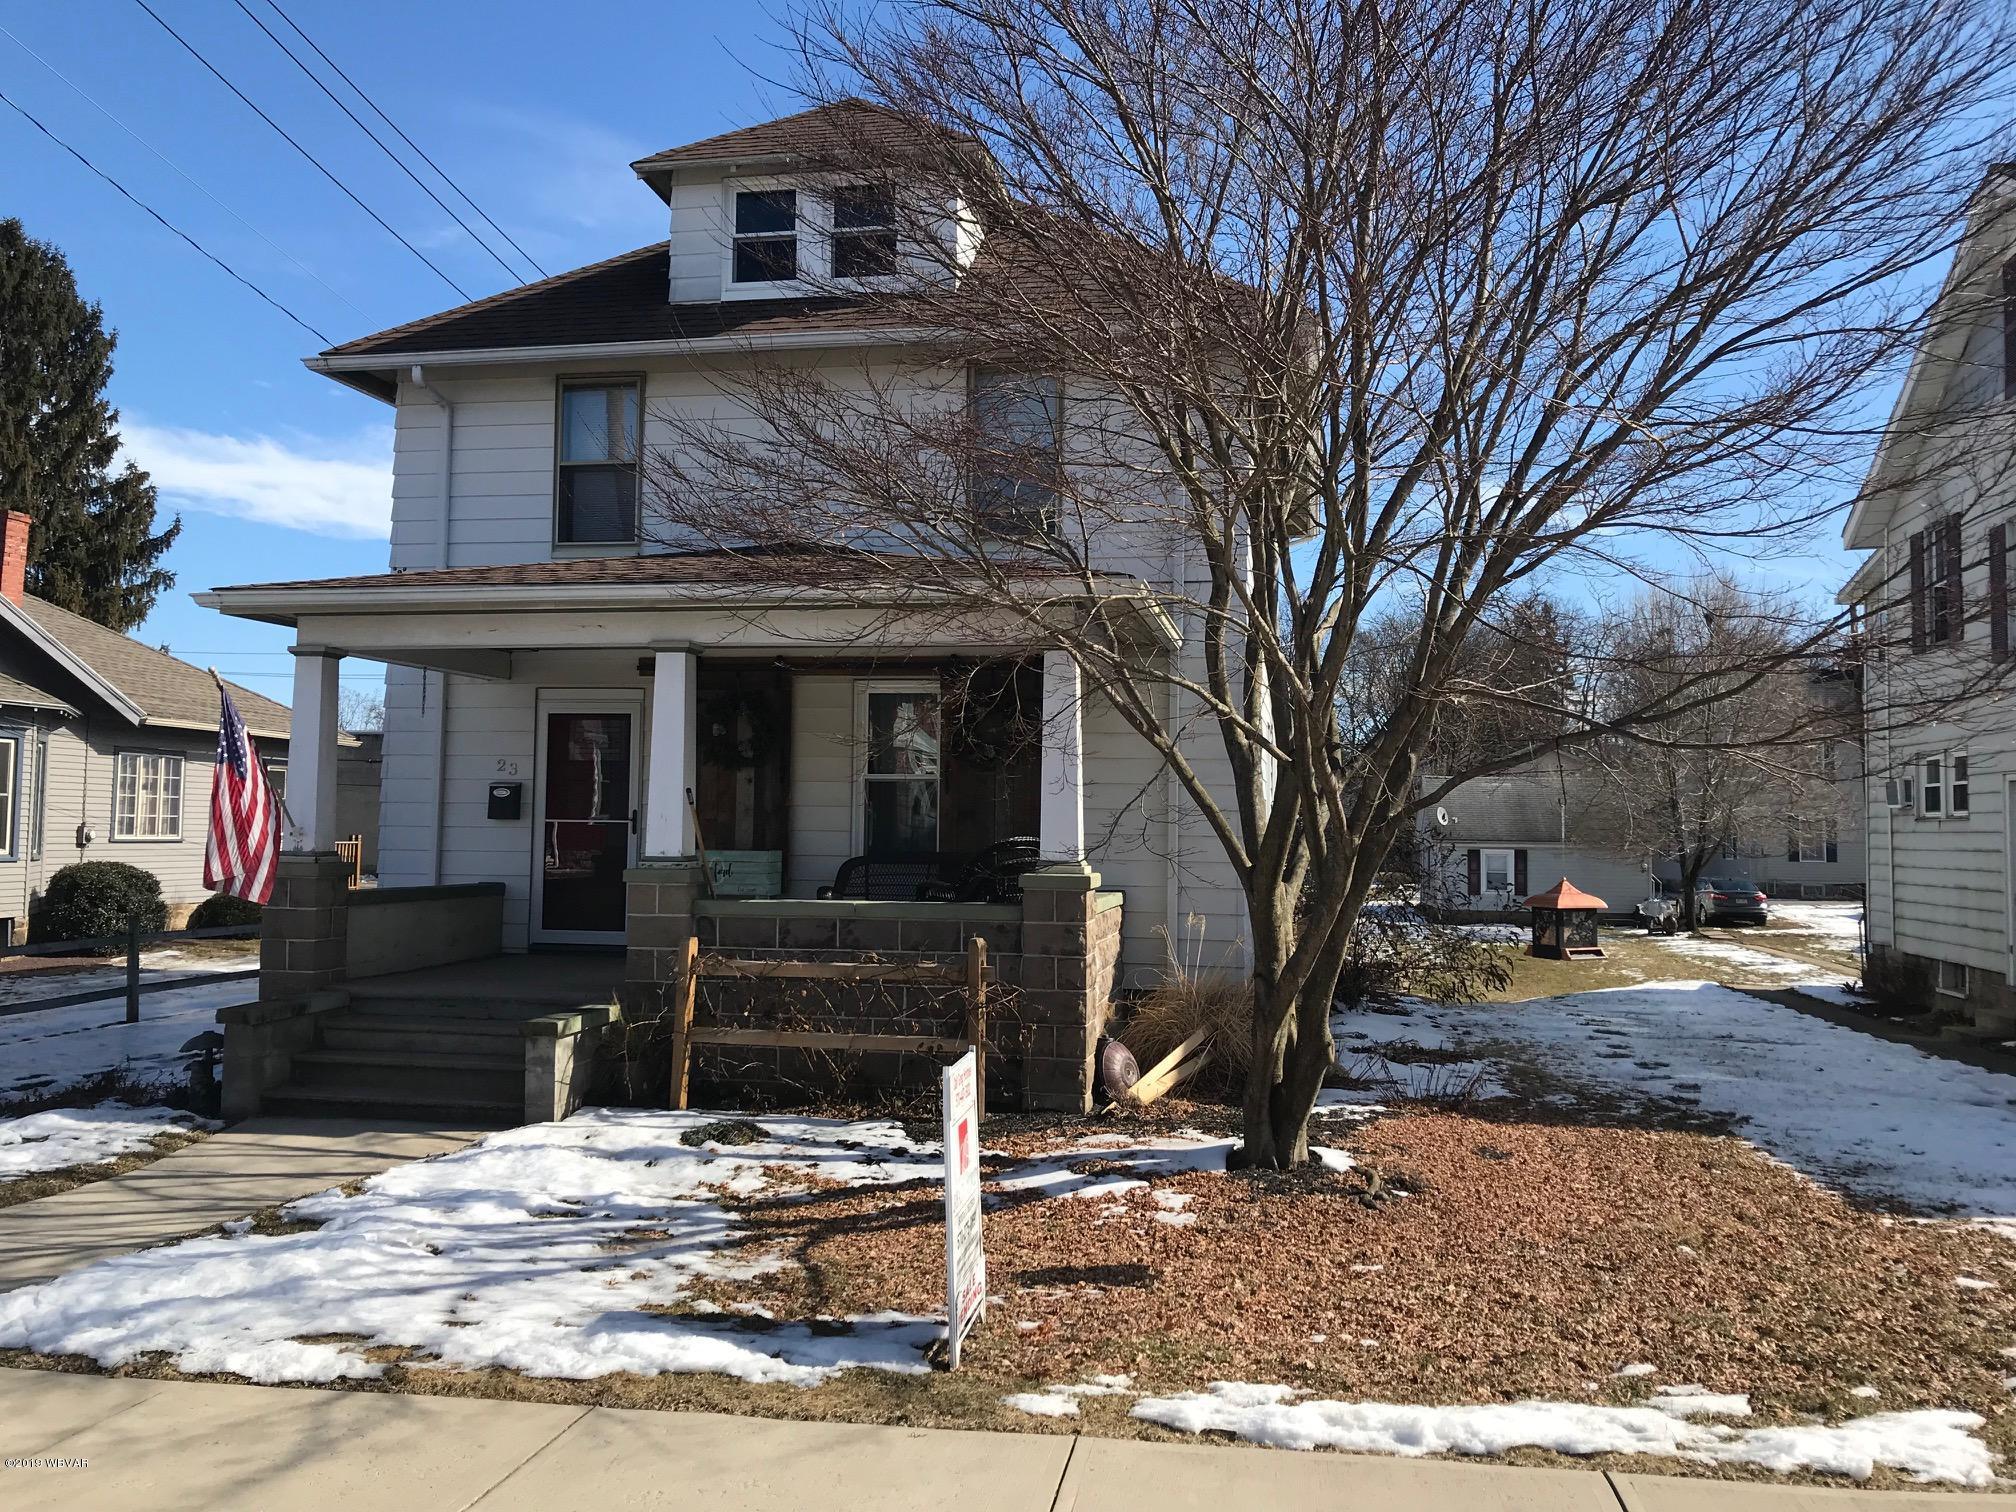 23 WASHINGTON STREET,Muncy,PA 17756,3 Bedrooms Bedrooms,1.5 BathroomsBathrooms,Residential,WASHINGTON,WB-86443